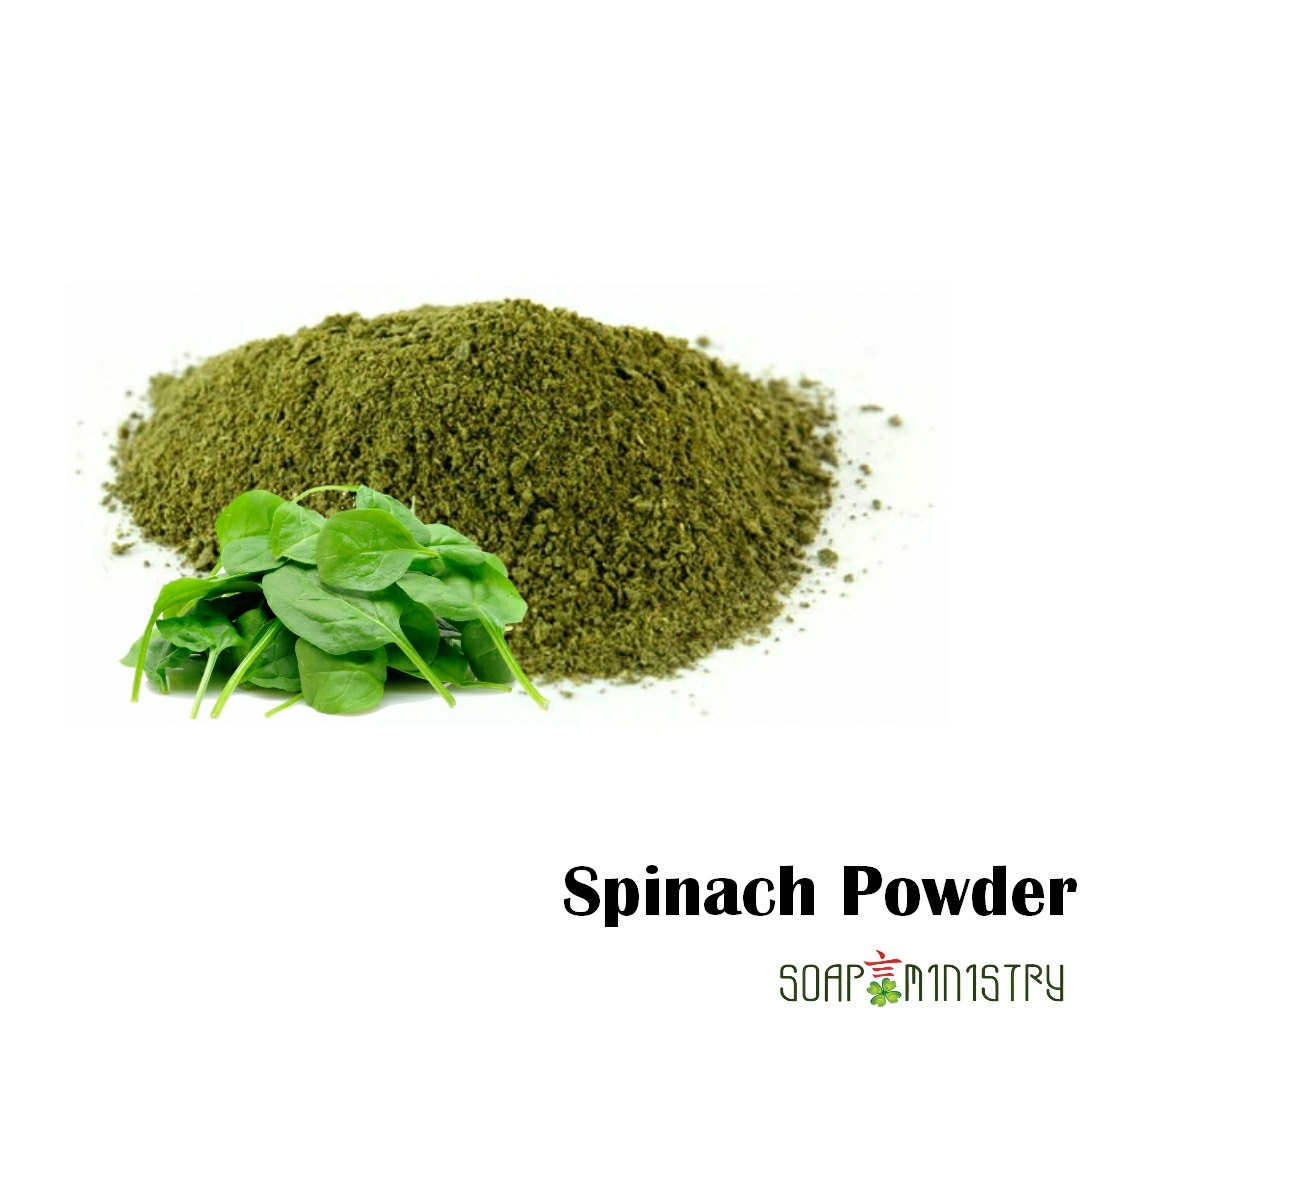 Spinach Powder 500g